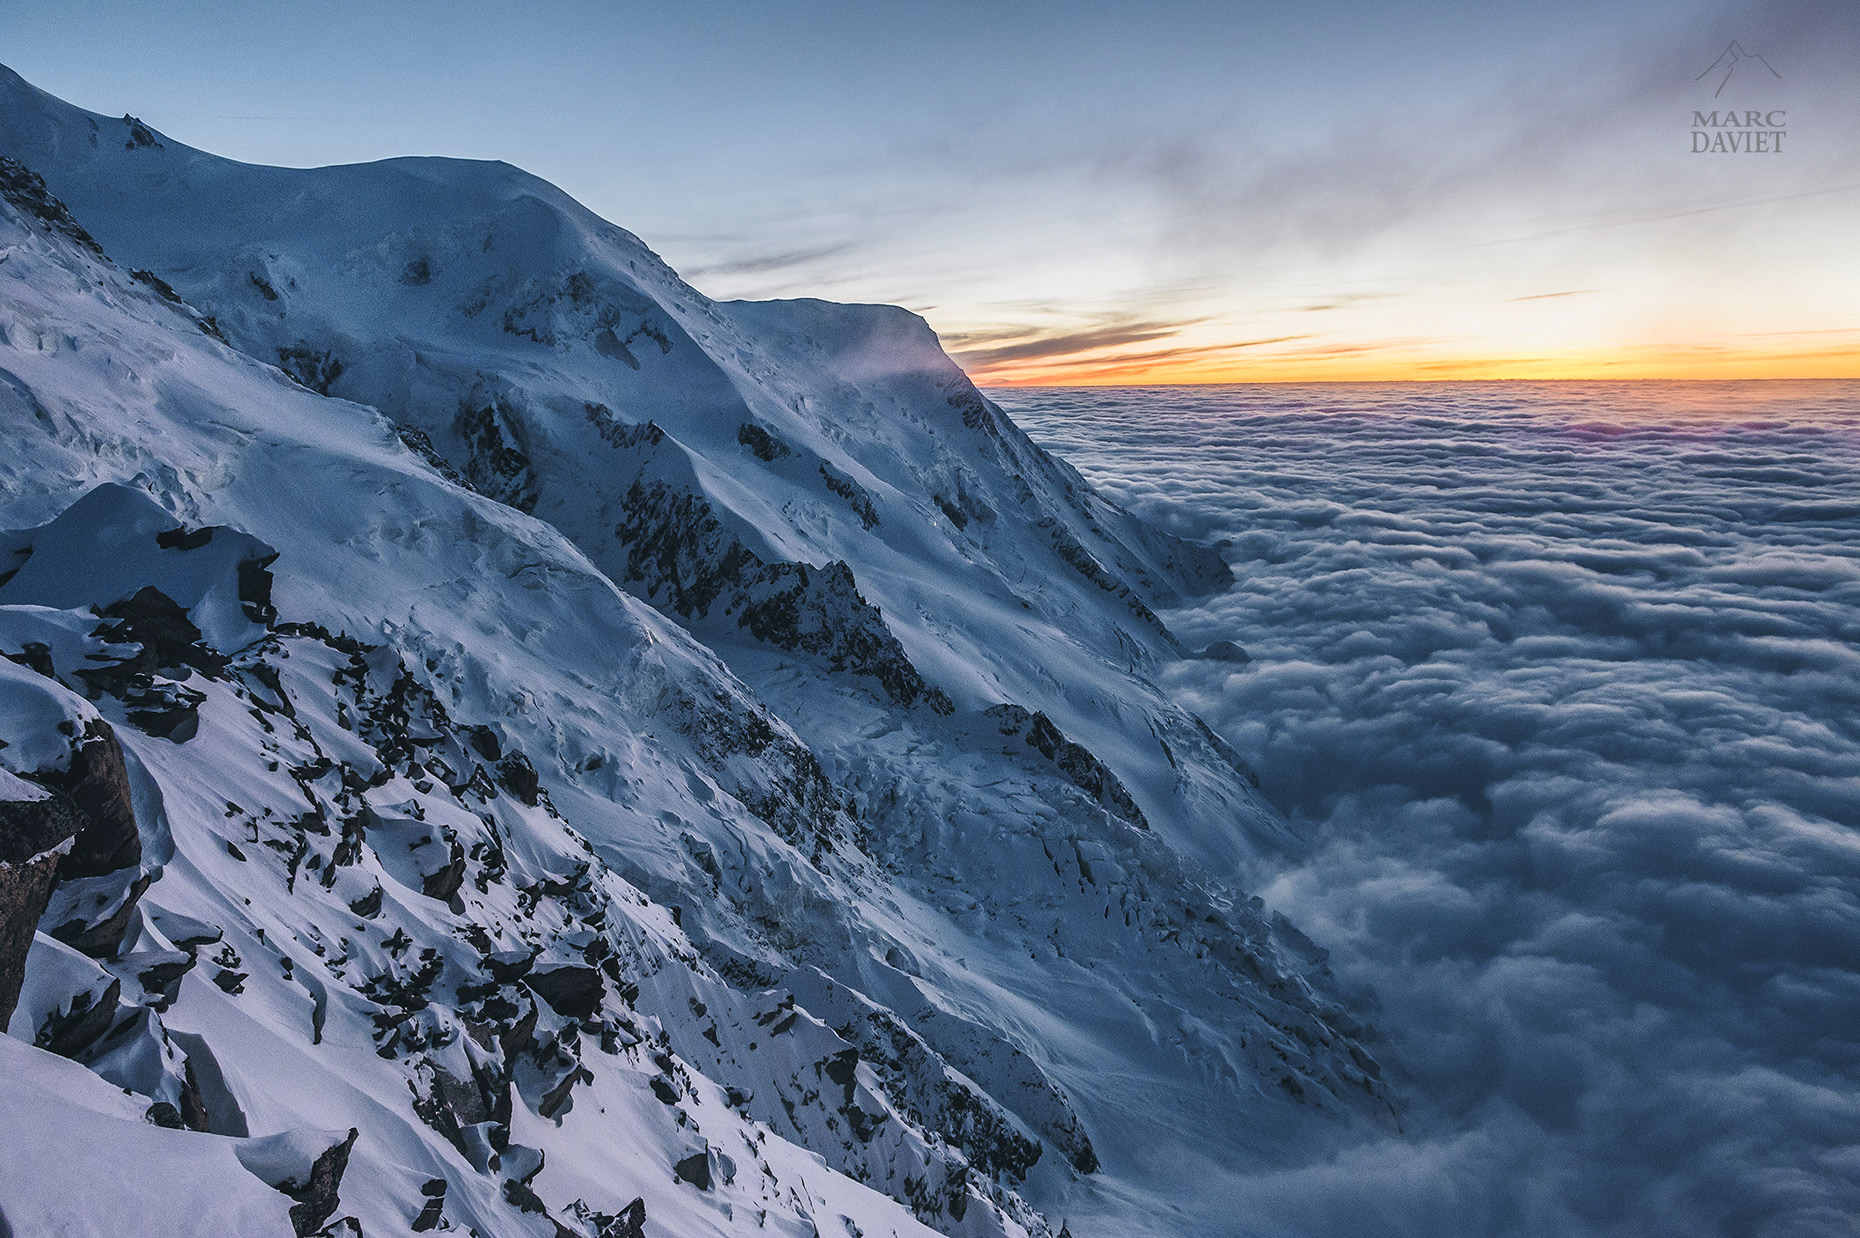 Sea of Clouds - Mont-Blanc  - Marc Daviet Photography